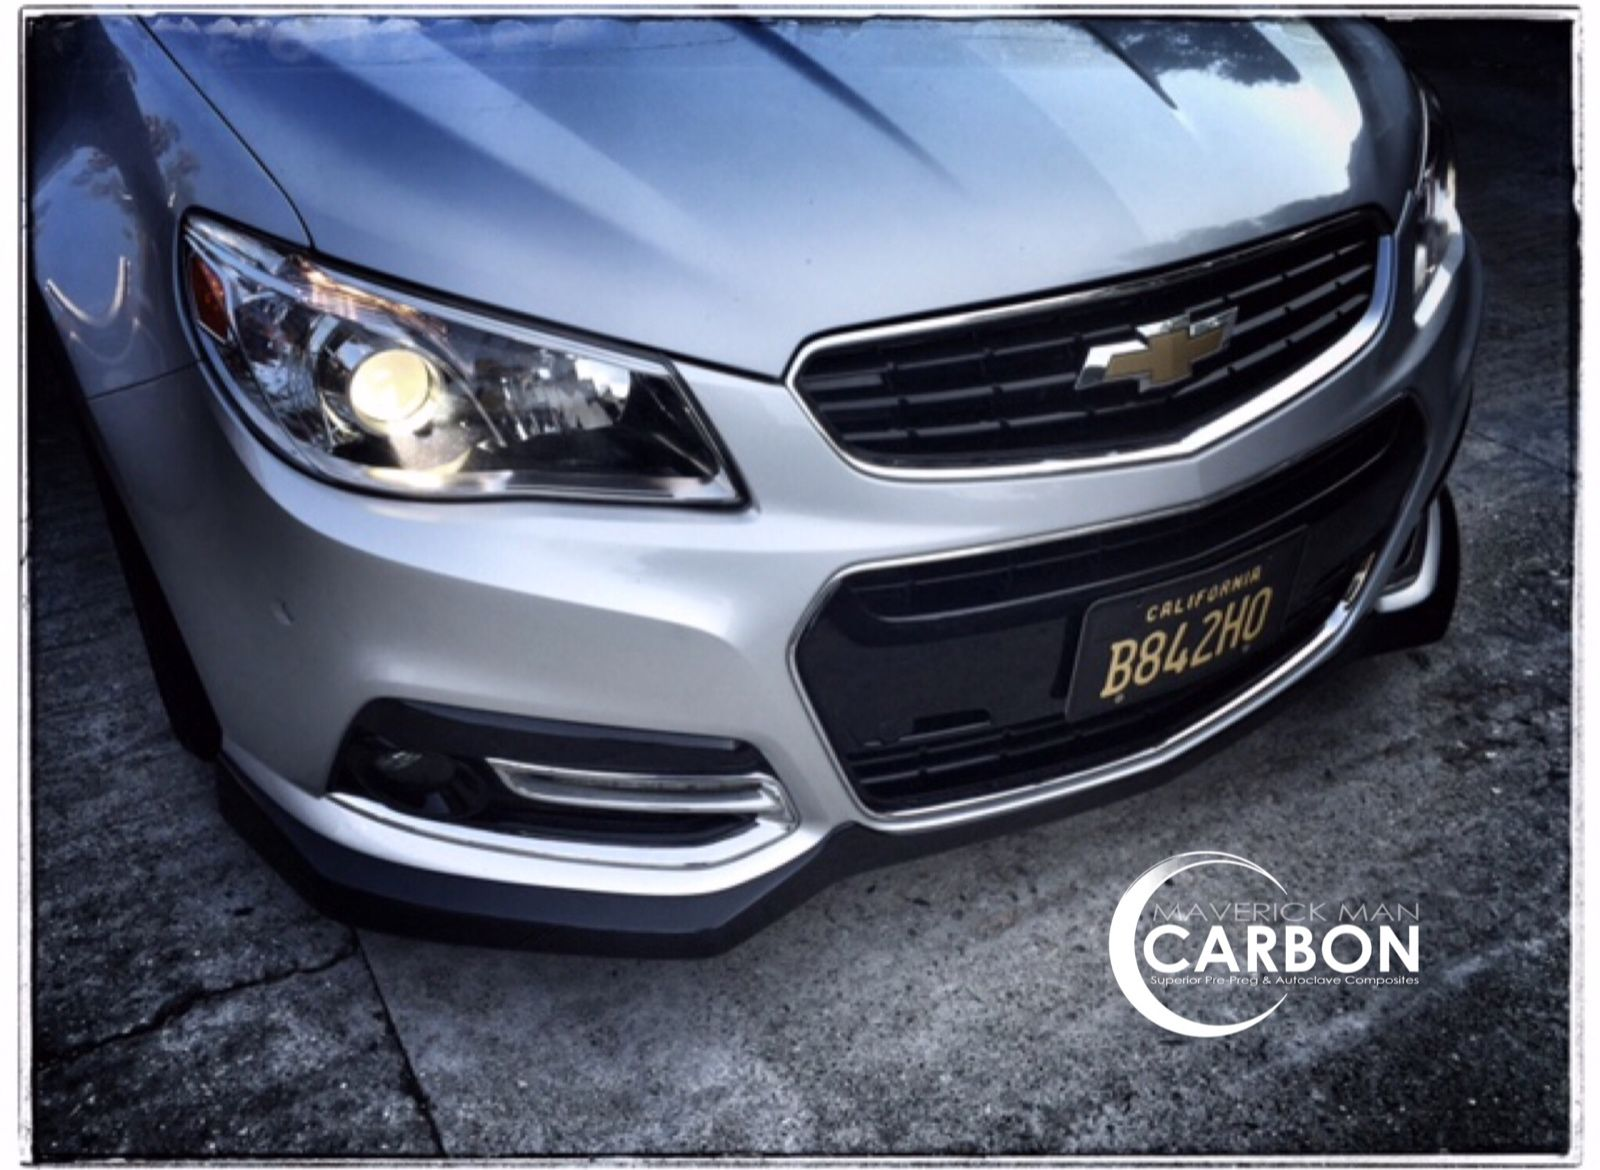 small resolution of another happy chevy ss owner with a maverick man carbon front lip chevrolet lumina